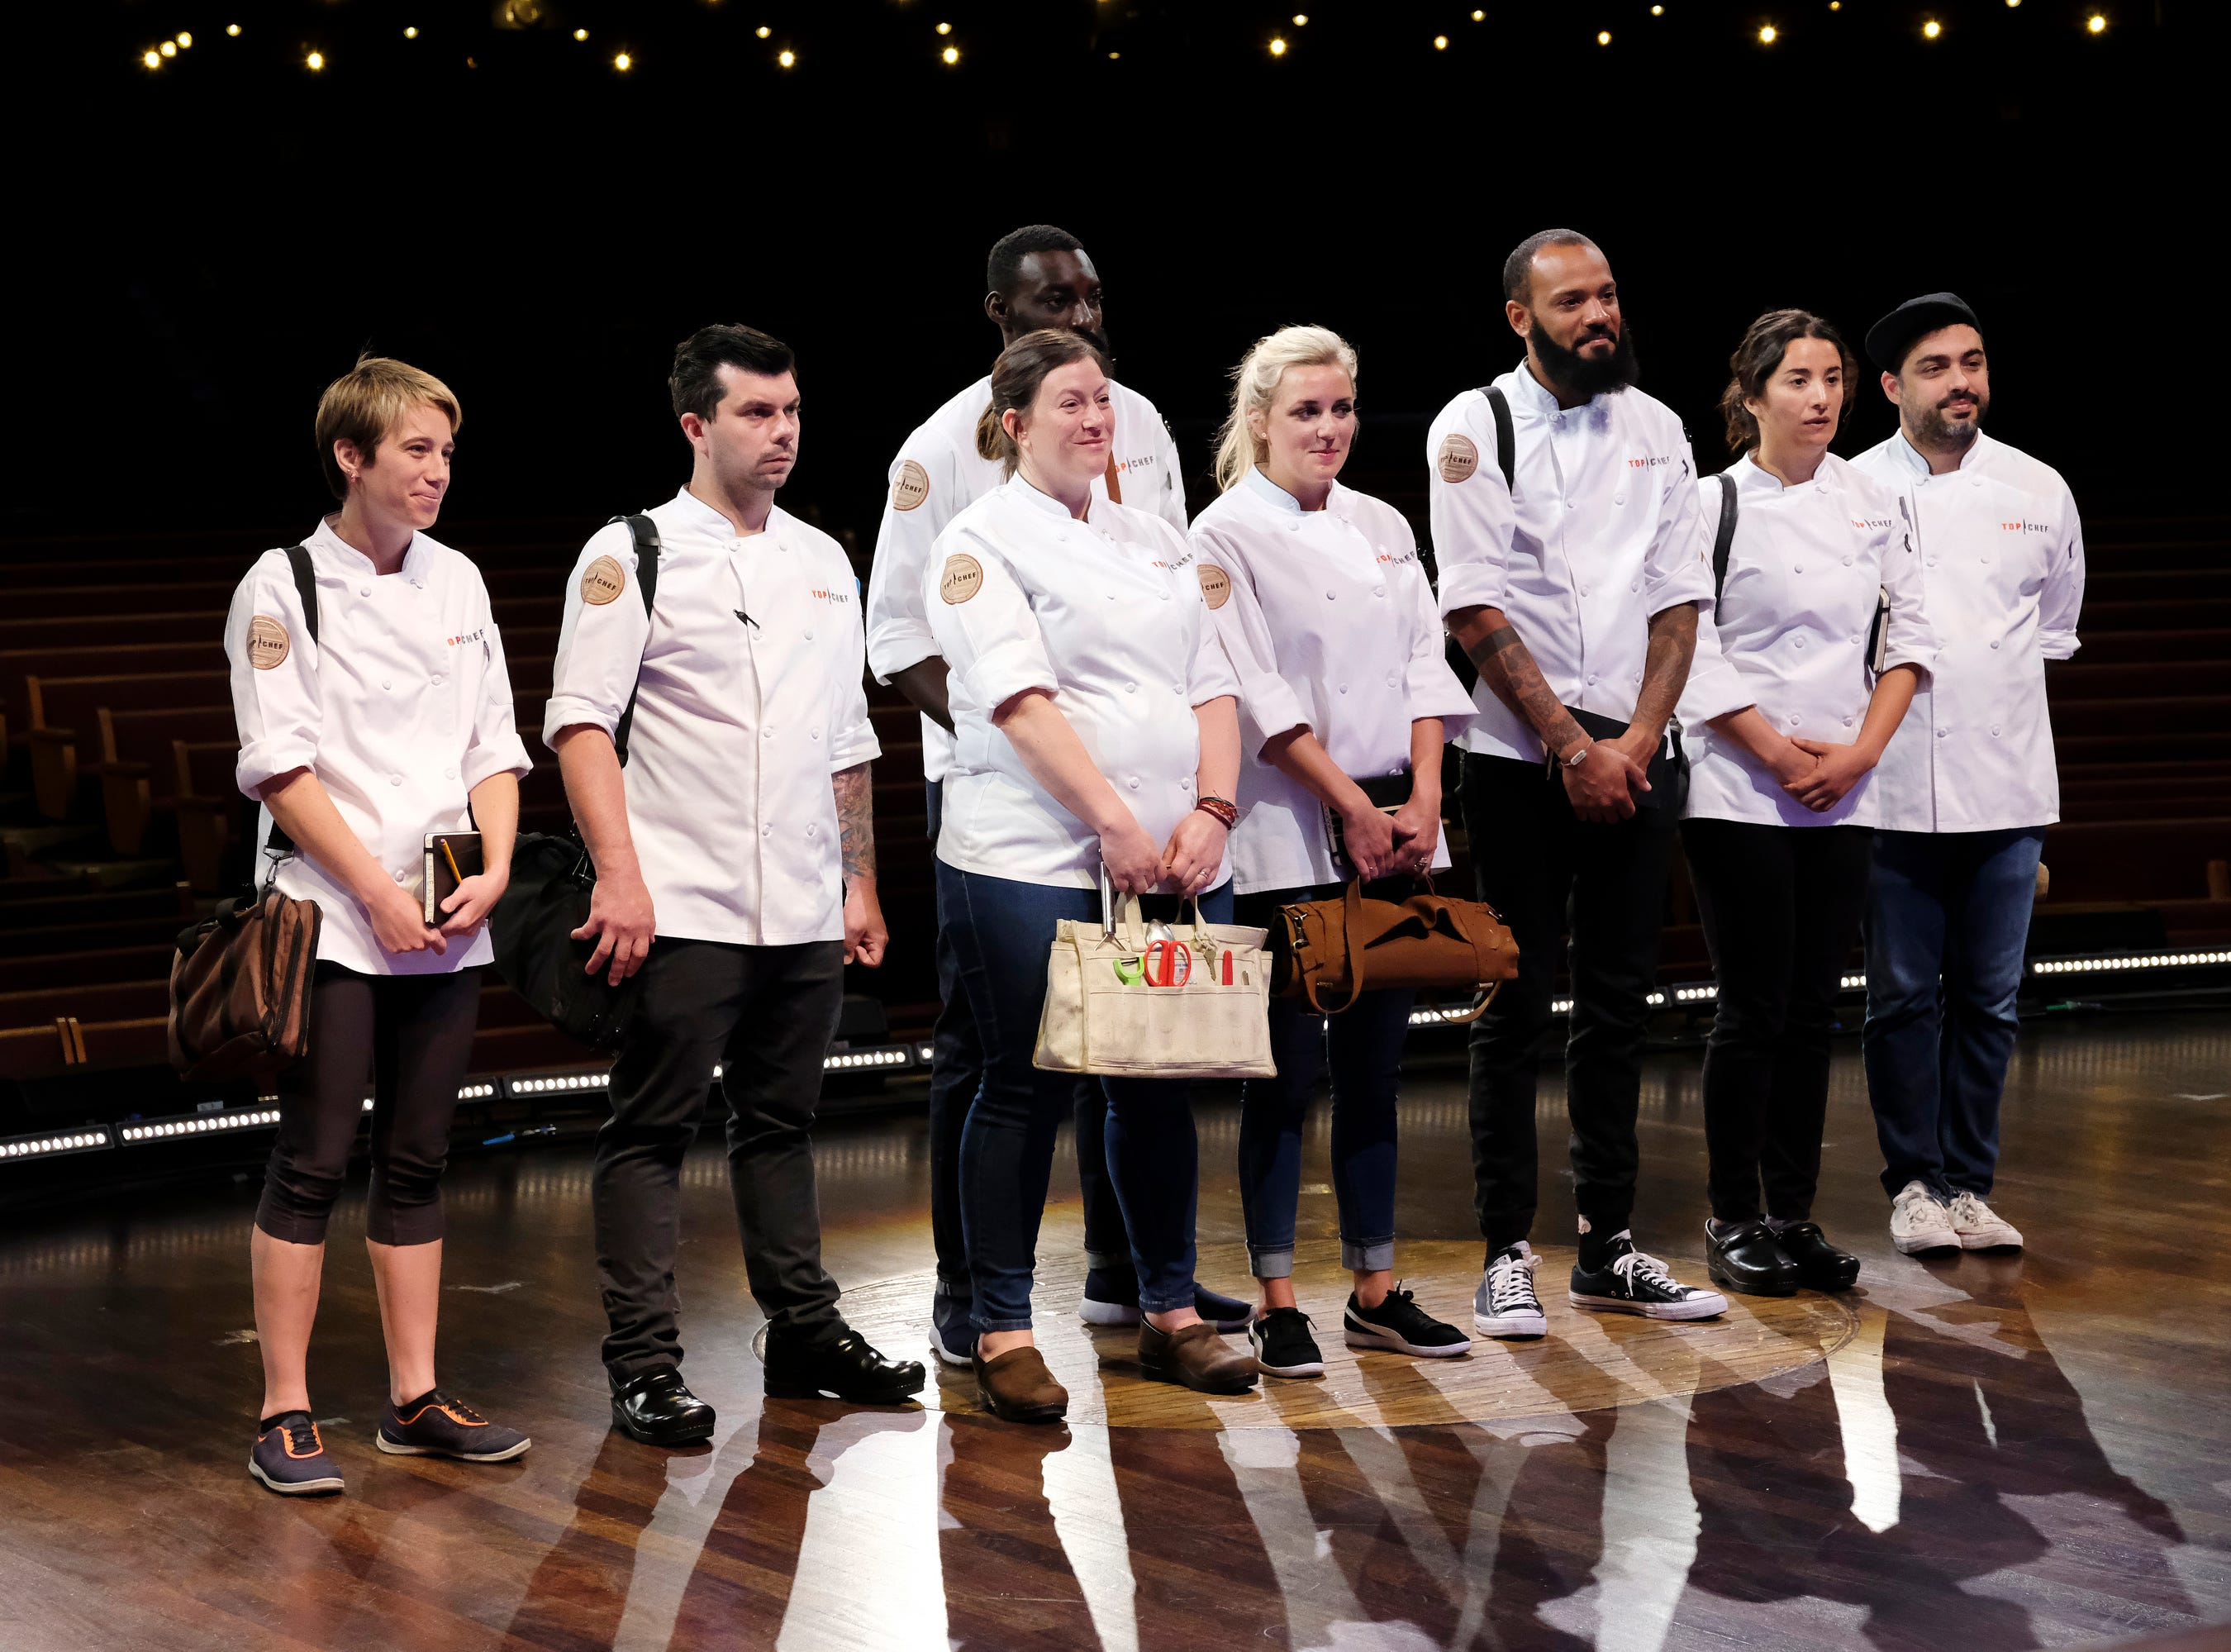 (Left to right) Adrienne Wright, Eddie Konrad, Sara Bradley, Eric Adjepong, Kelsey Barnard, Justin Sutherland, Michelle Minori and David Viana on episode 9 of Bravo's 'Top Chef: Kentucky' season.